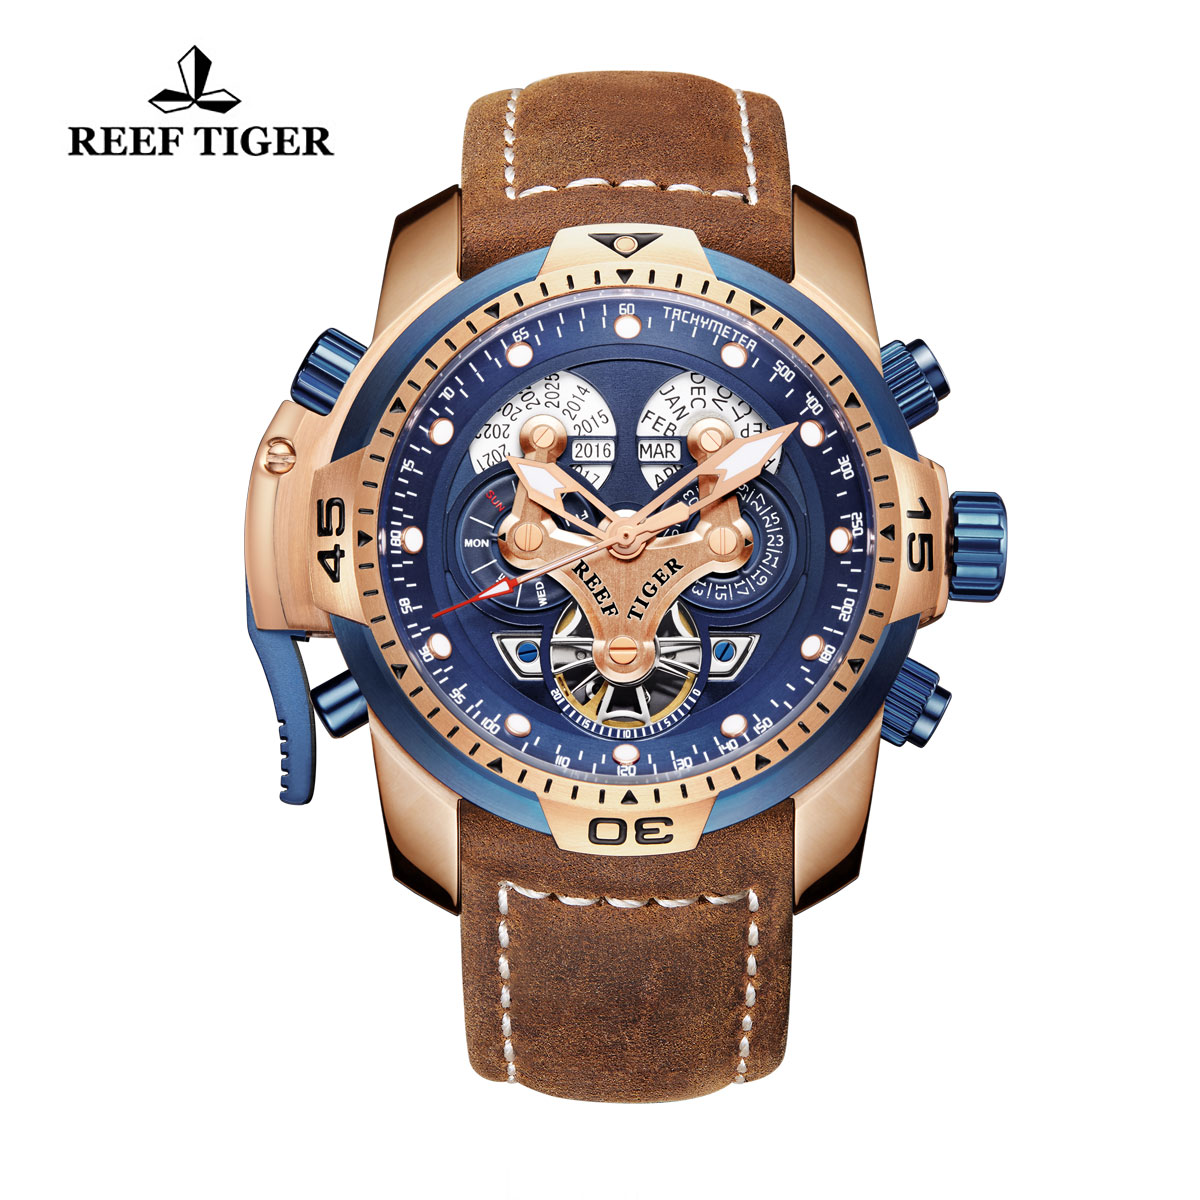 Reef Tiger Concept Sport Watches Automatic Watch Rose Gold Case Brown Leather RGA3503-PLSG